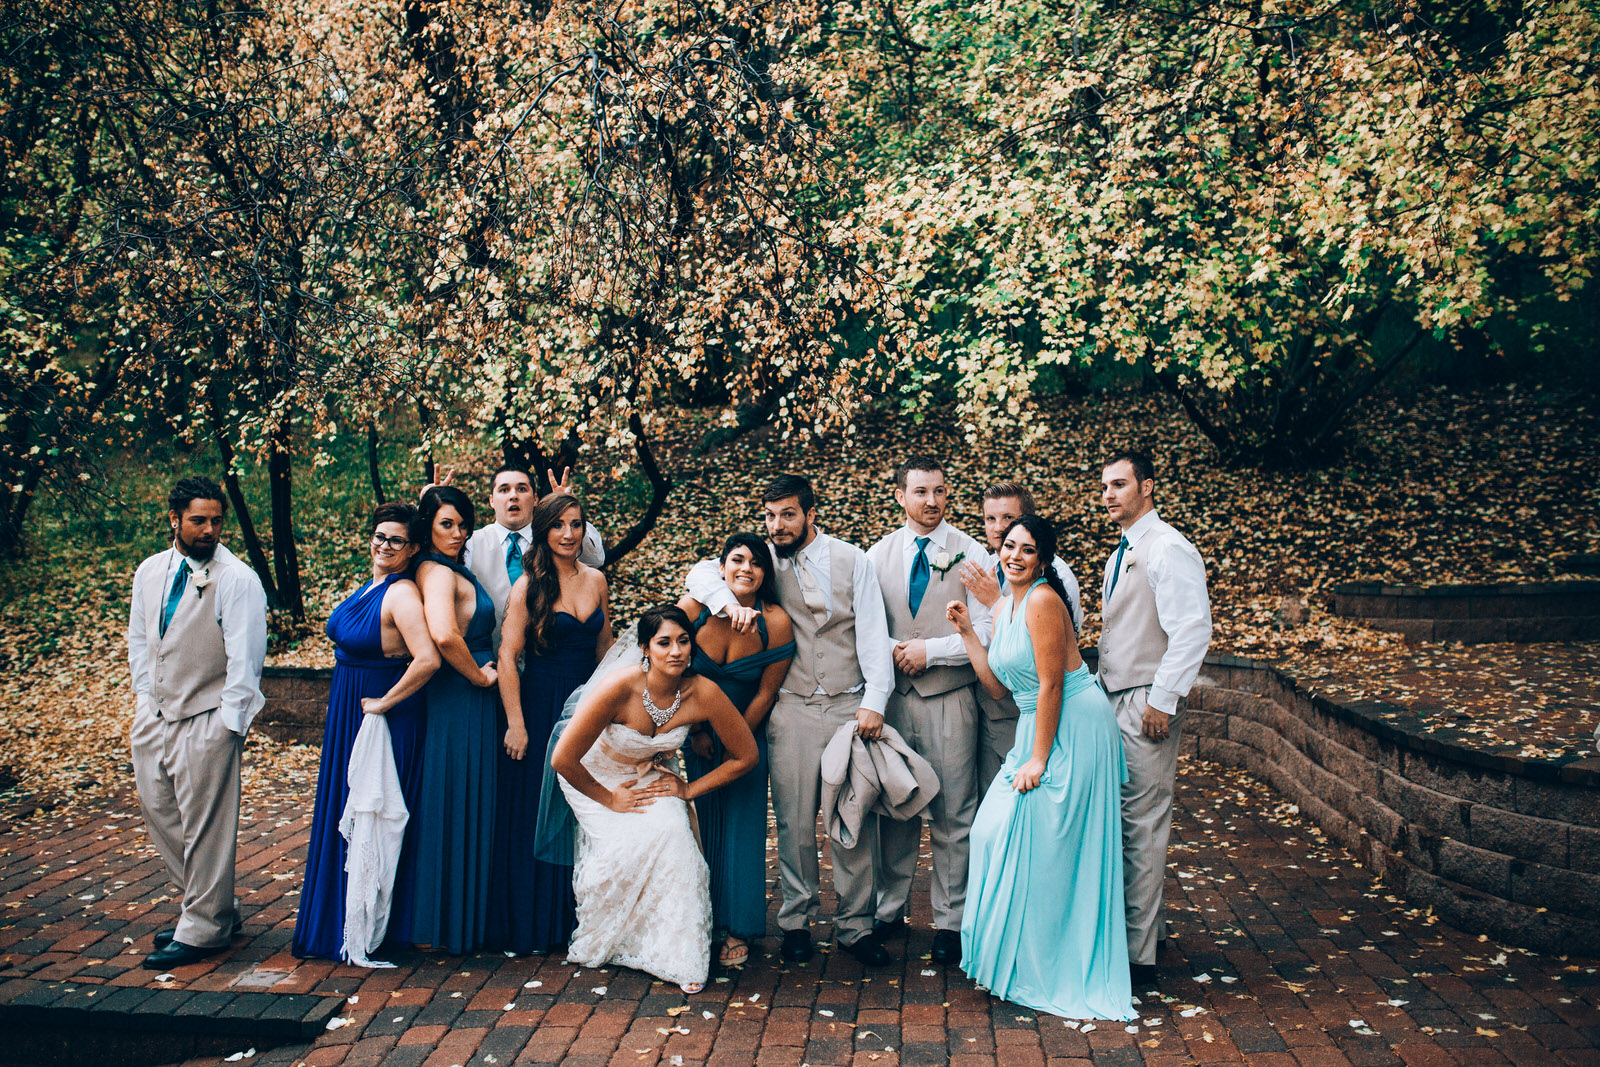 The Pines at Genesee - Denver Wedding Photographer (42 of 52)-1.jpg